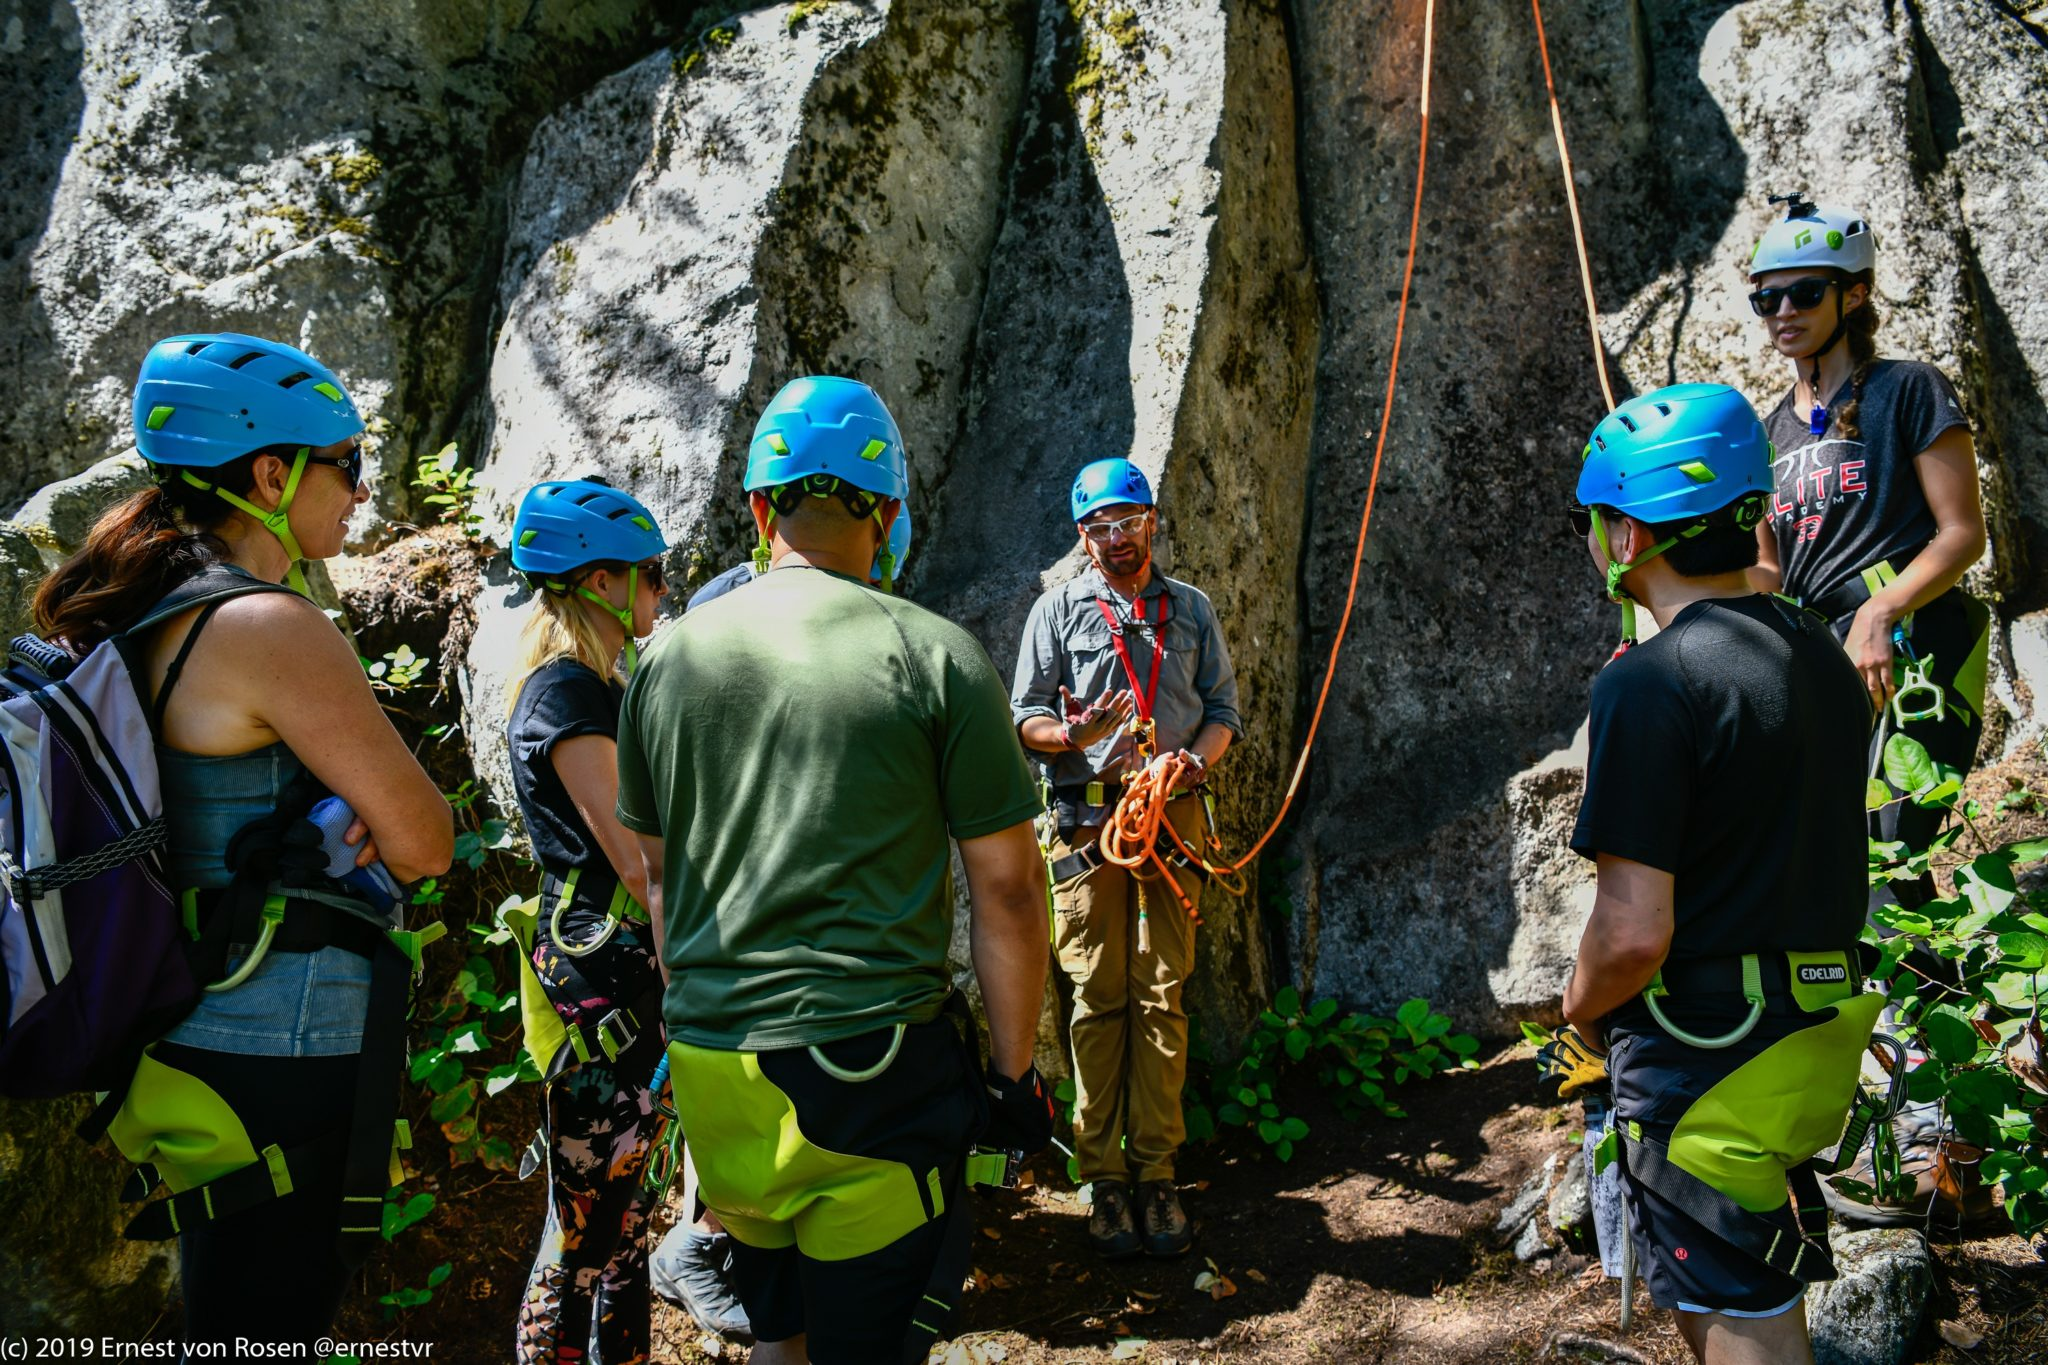 FX with a group at the bottom of a crag explaining how to use ropes to rappel